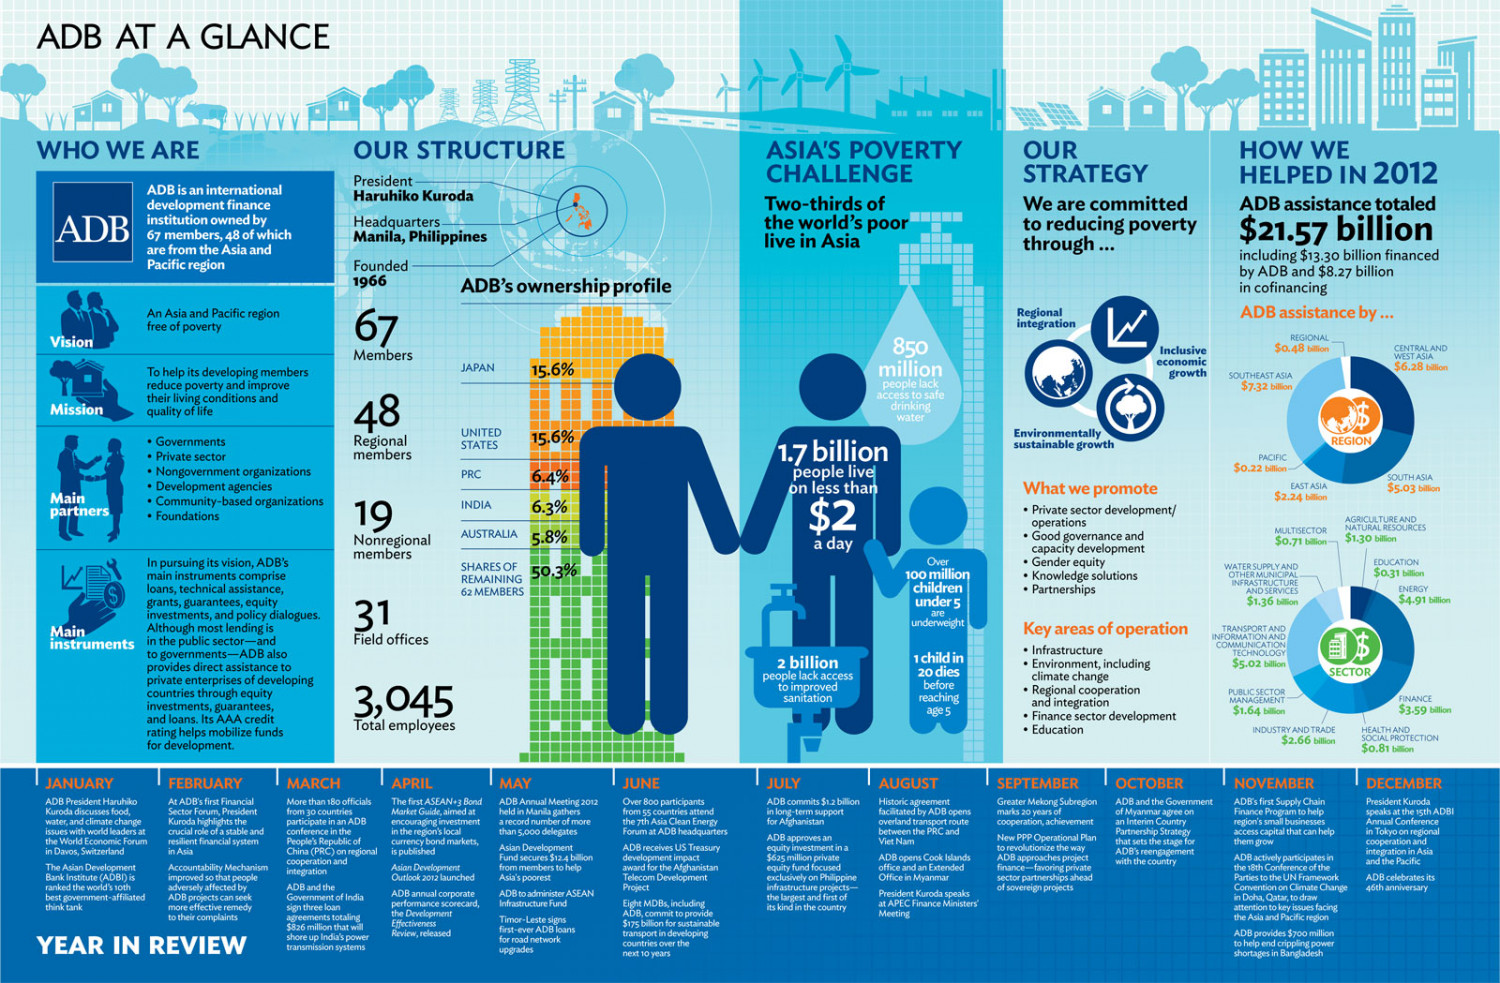 ADB at a Glance Infographic